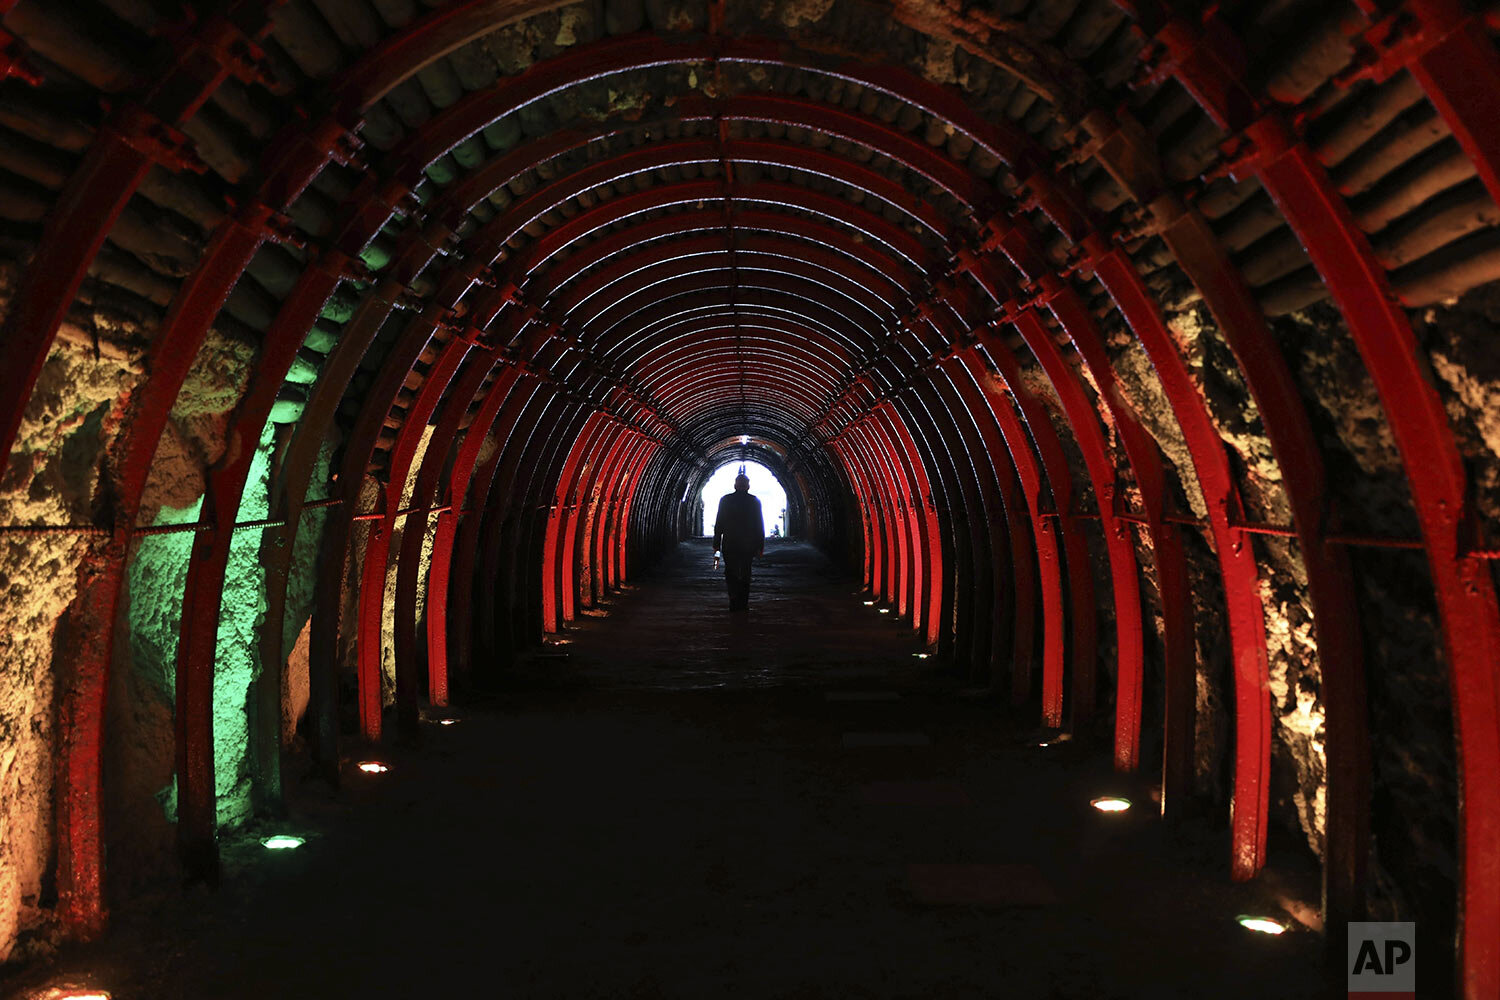 A man exits after touring the underground, New Salt Cathedral in Zipaquira, Colombia, Wednesday, Dec. 16, 2020. Considered the First Wonder of Colombia, the architectural, religious, and salt mining site marked its first 25 years of history in 2020. (AP Photo/Fernando Vergara)